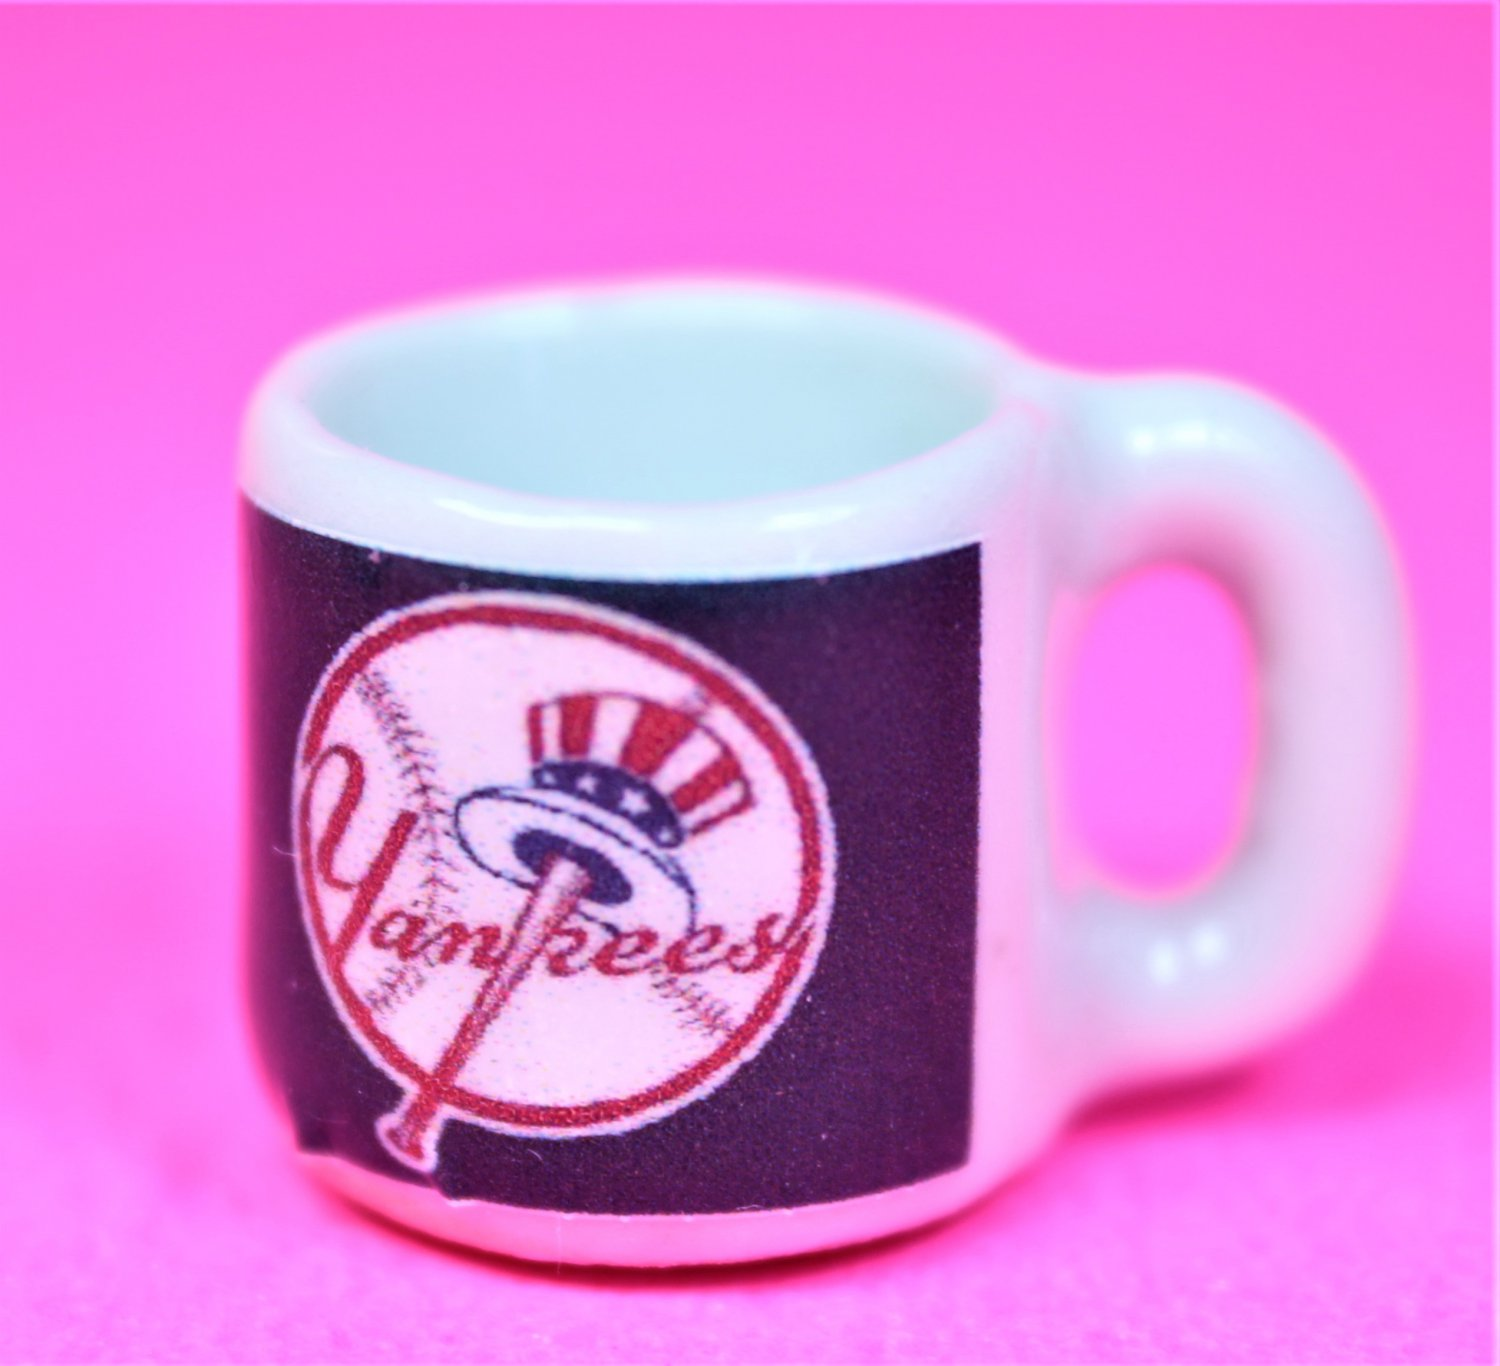 "Dollhouse miniature size 1/12"" scale replica Yankees sports coffee mug"